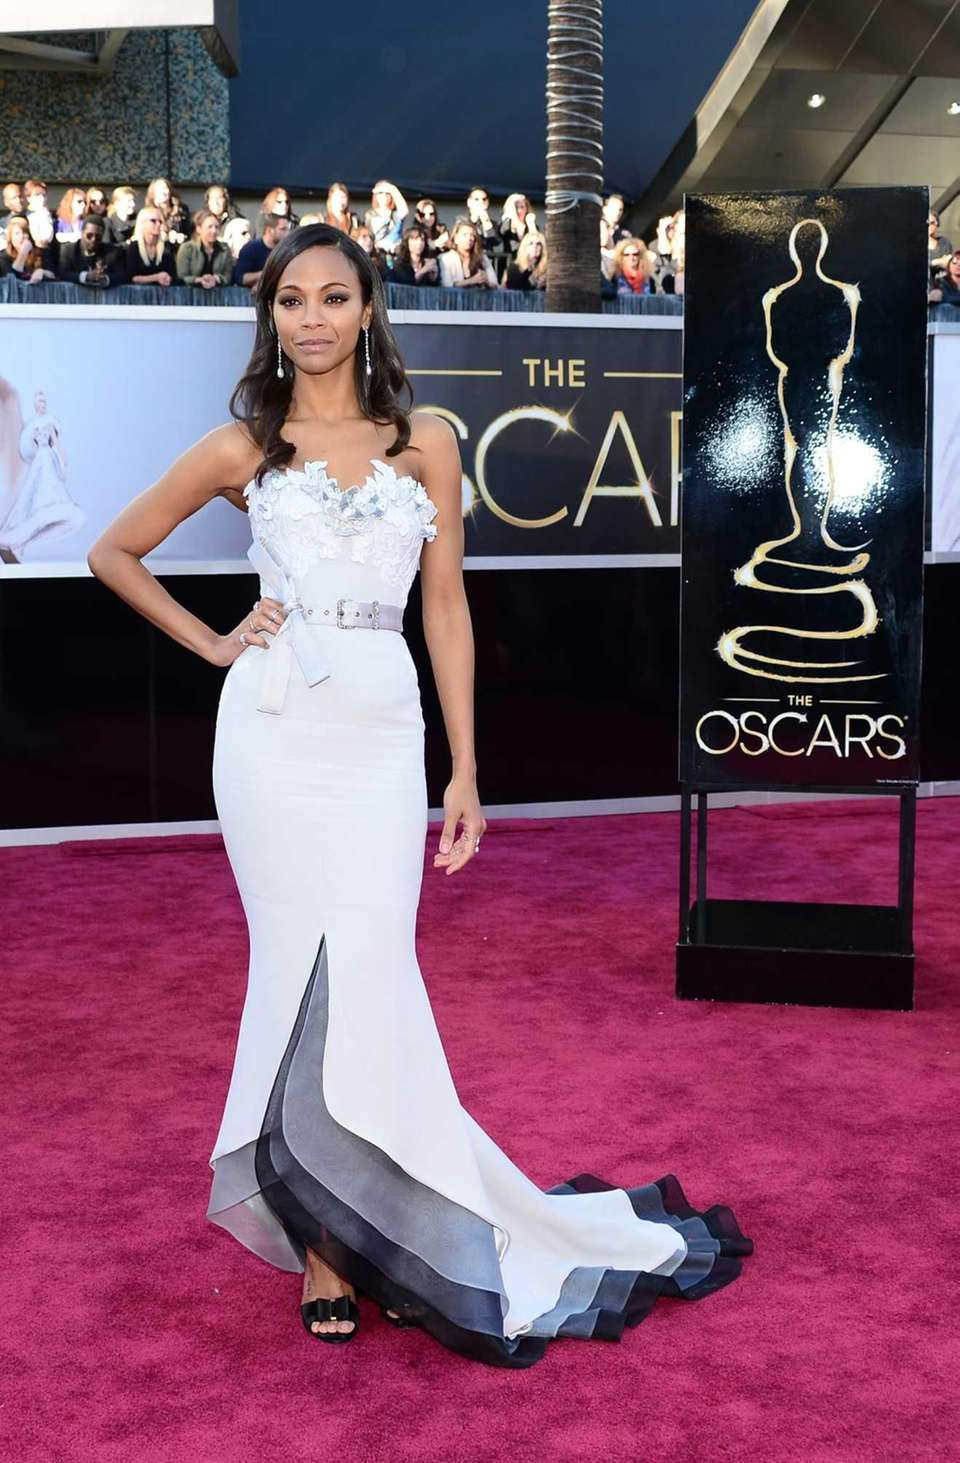 Zoe Saldana arrives on the red carpet at